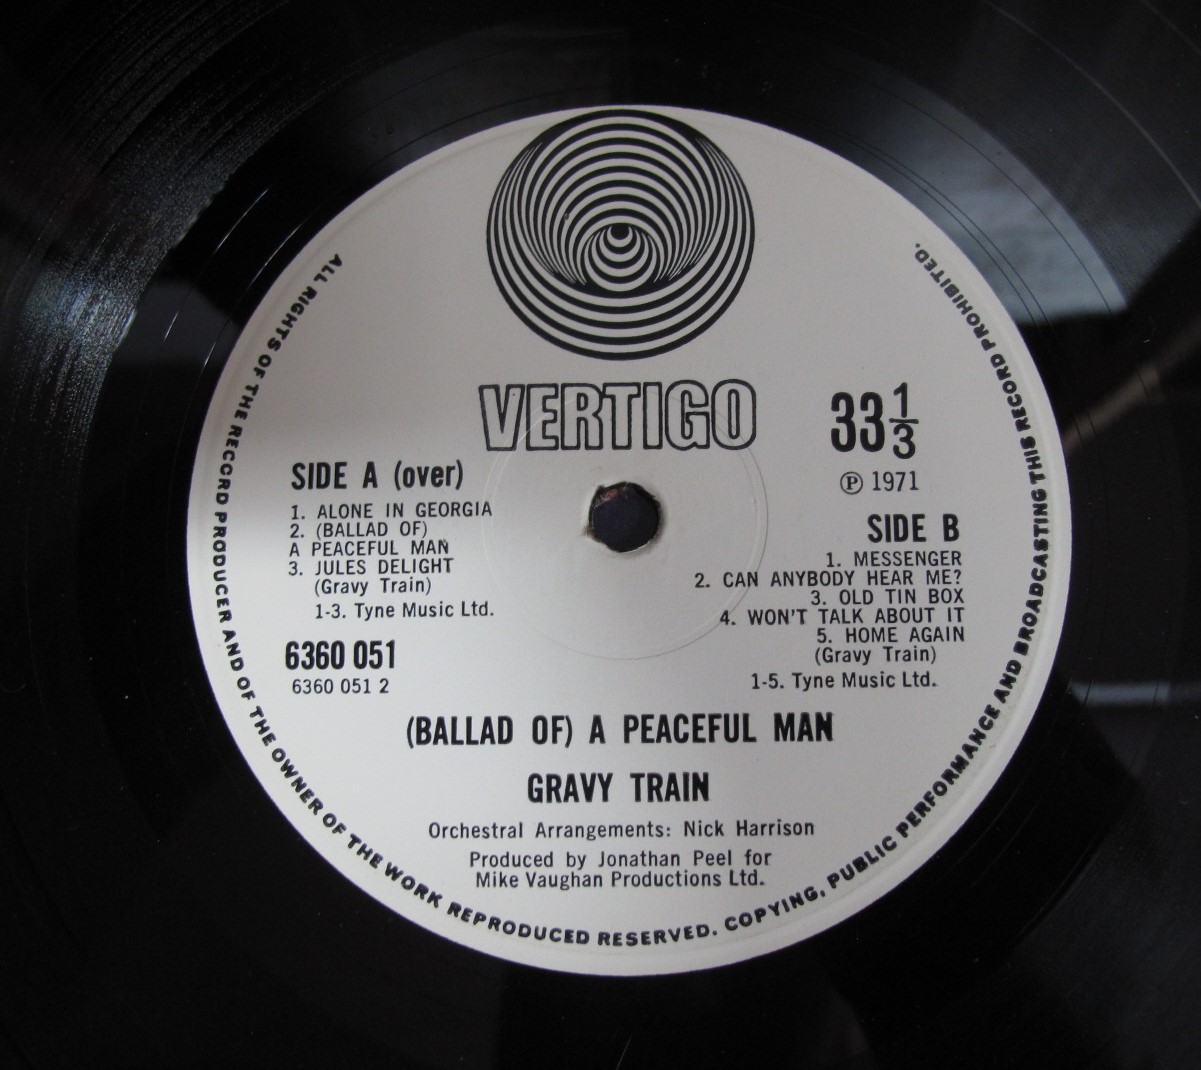 Lot 639 - Gravy Train: Ballad of A Peaceful Man' LP, small Vertigo swirl 6360 051, 1971, 1Y/1 2Y/1 matrix